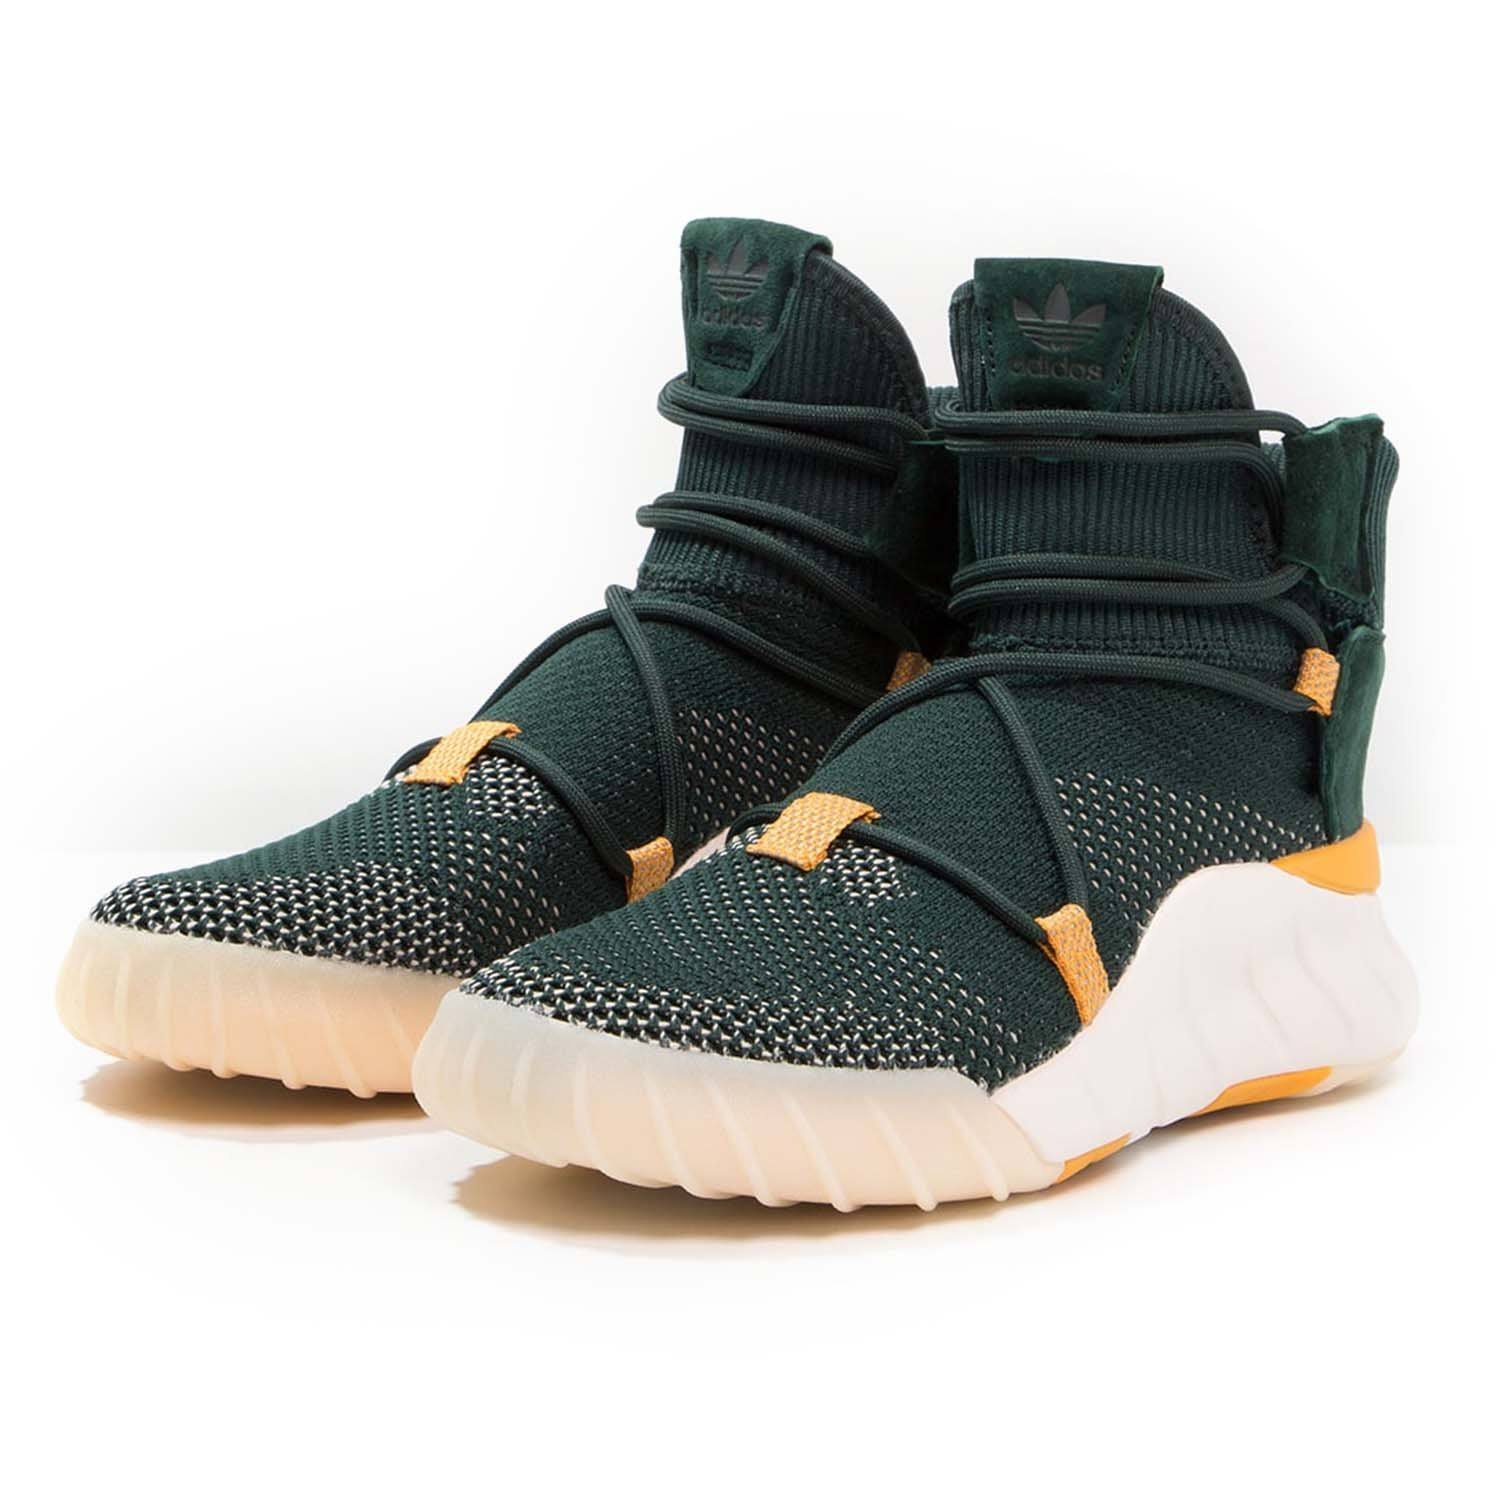 0 Tubular Cq1376 Zapatillas X Sz 2 Night Yellow 12 Green Adidas Originals Primeknit aqRwXf